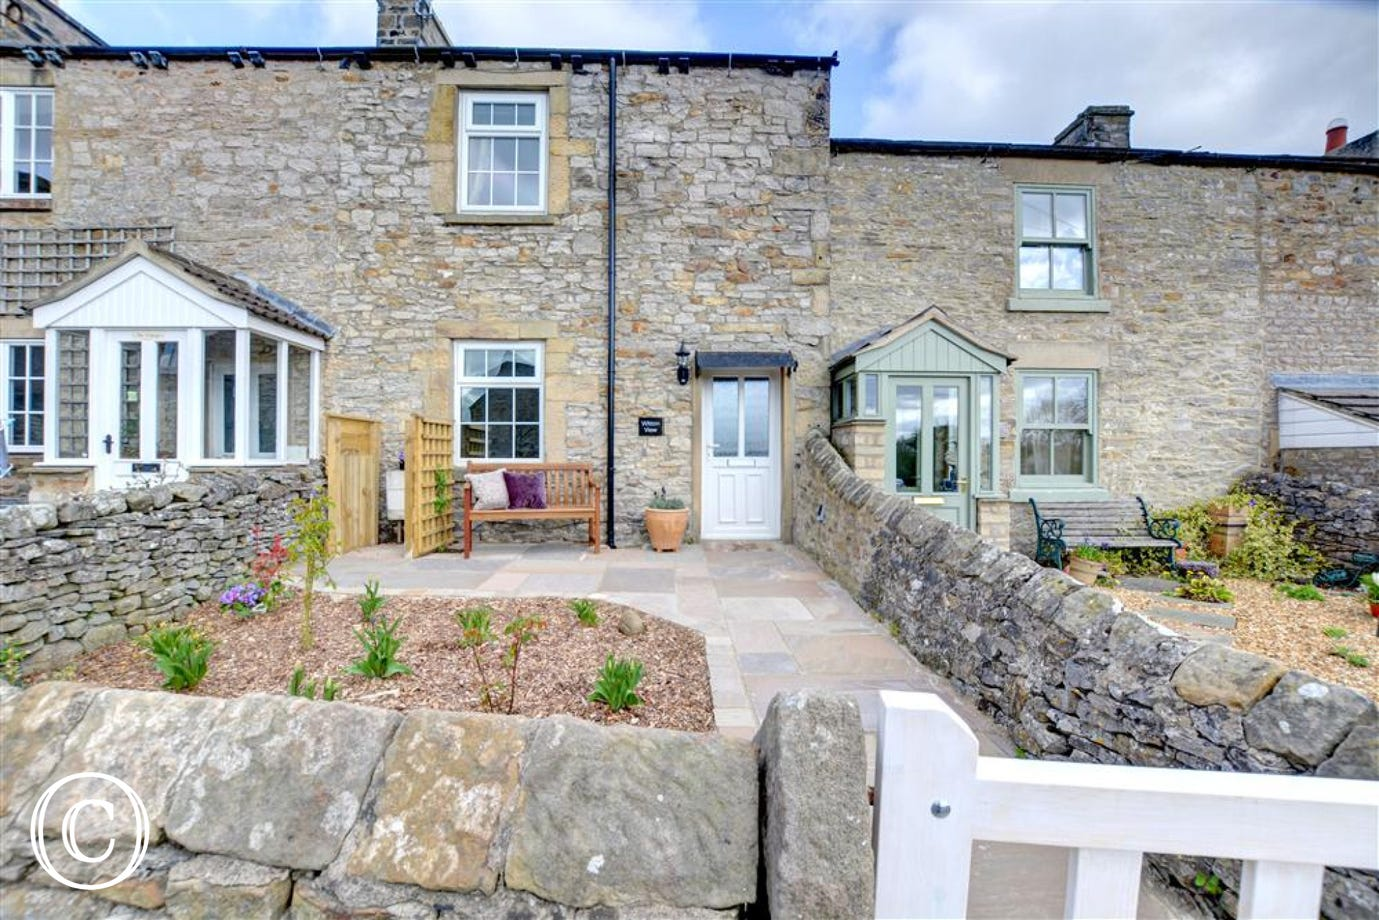 Located in Bellerby, this character cottage is ideal for a break in the Dales.